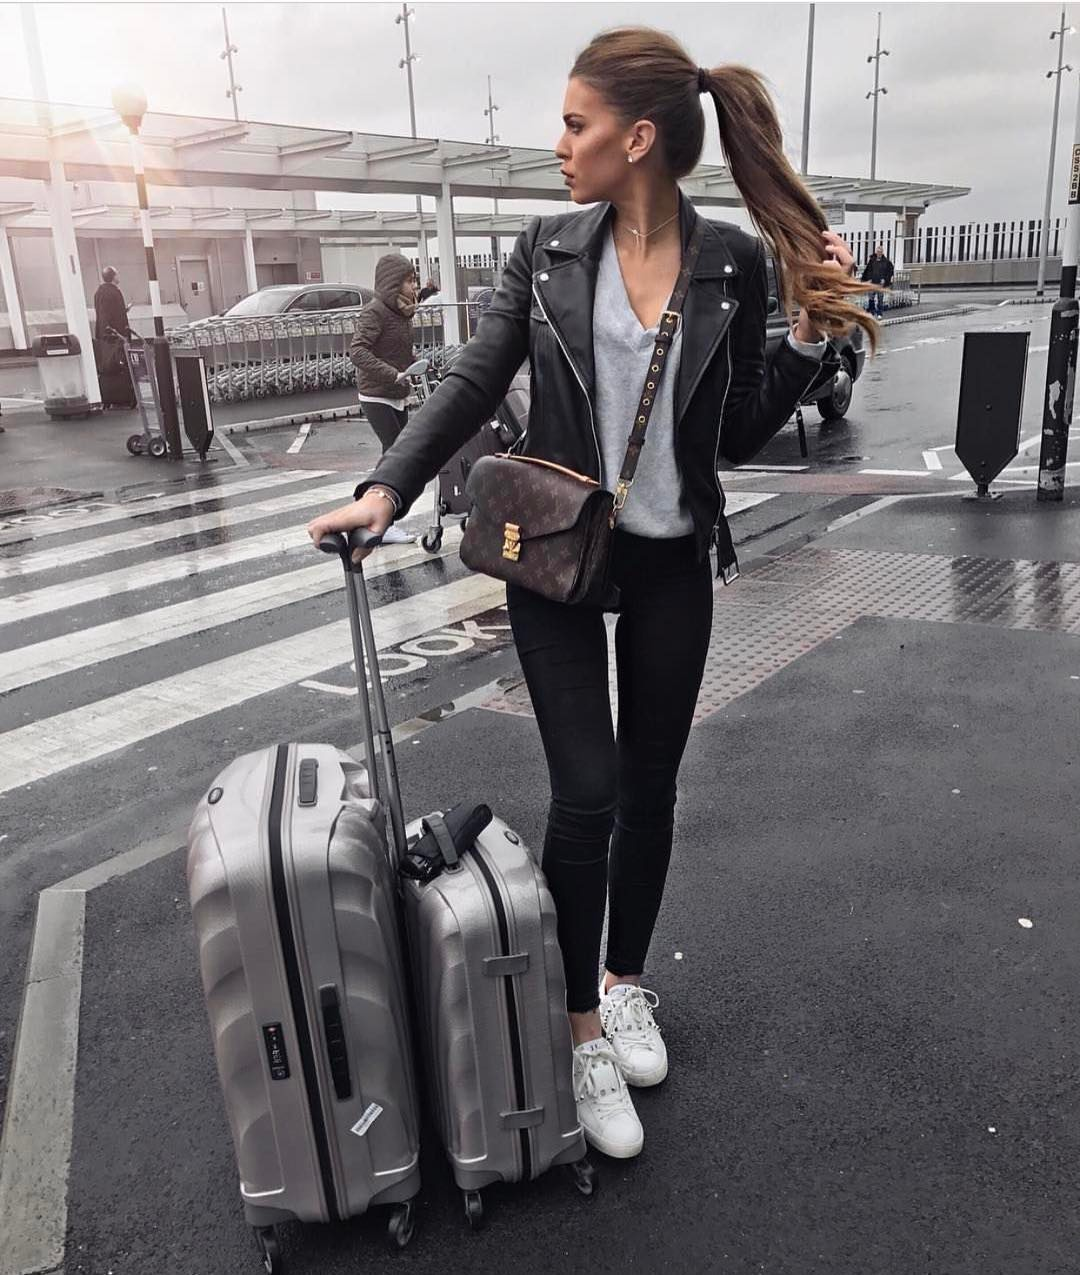 Black Leather Jacket With Grey Top And Skinny Jeans In Black: Airport Style 2019